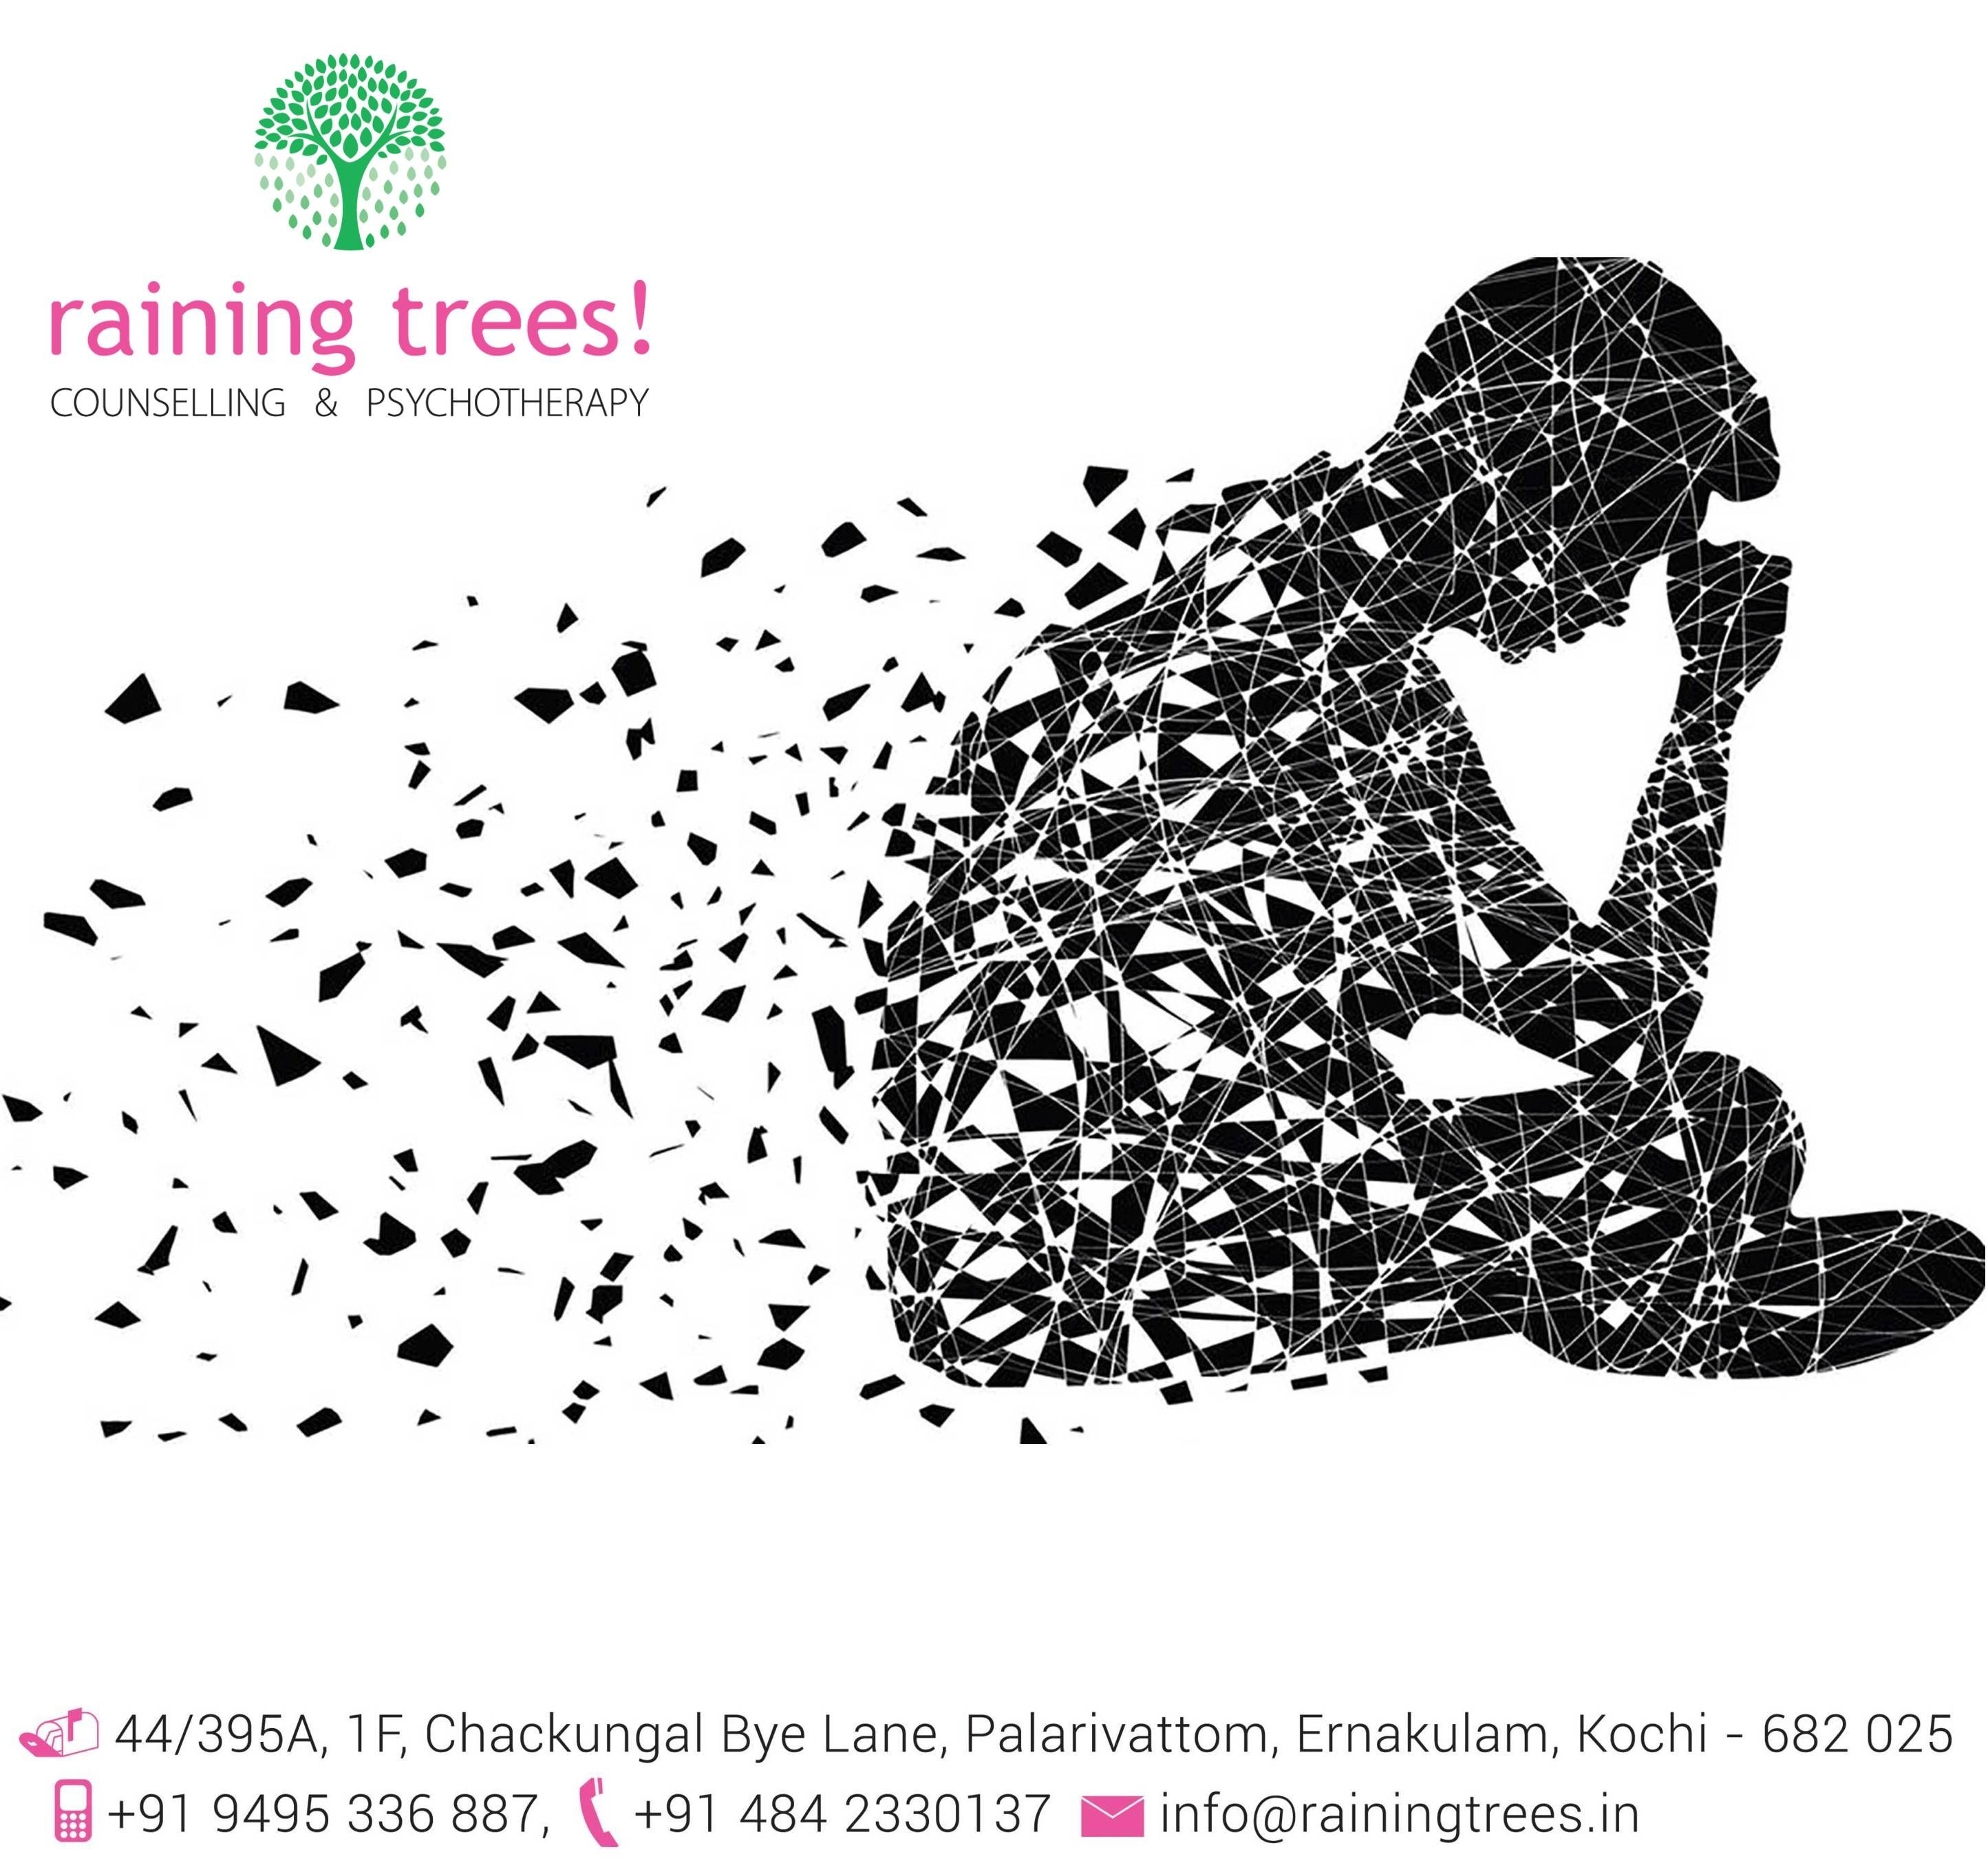 Confused? Fix Your Appointment With Raining Trees